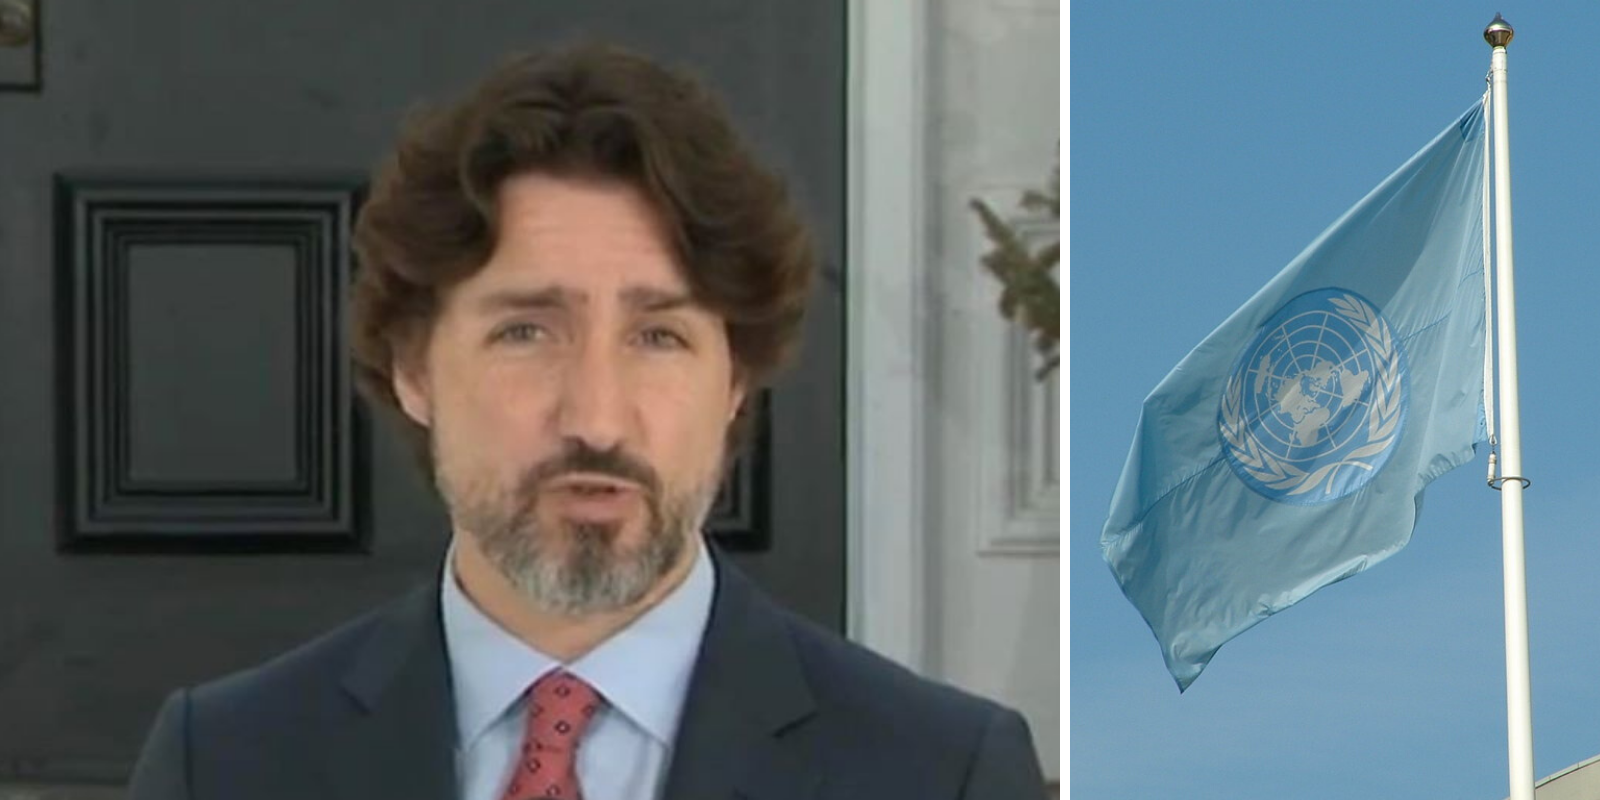 Trudeau announces meeting with UN, will look into giving asylum seekers immigrant status